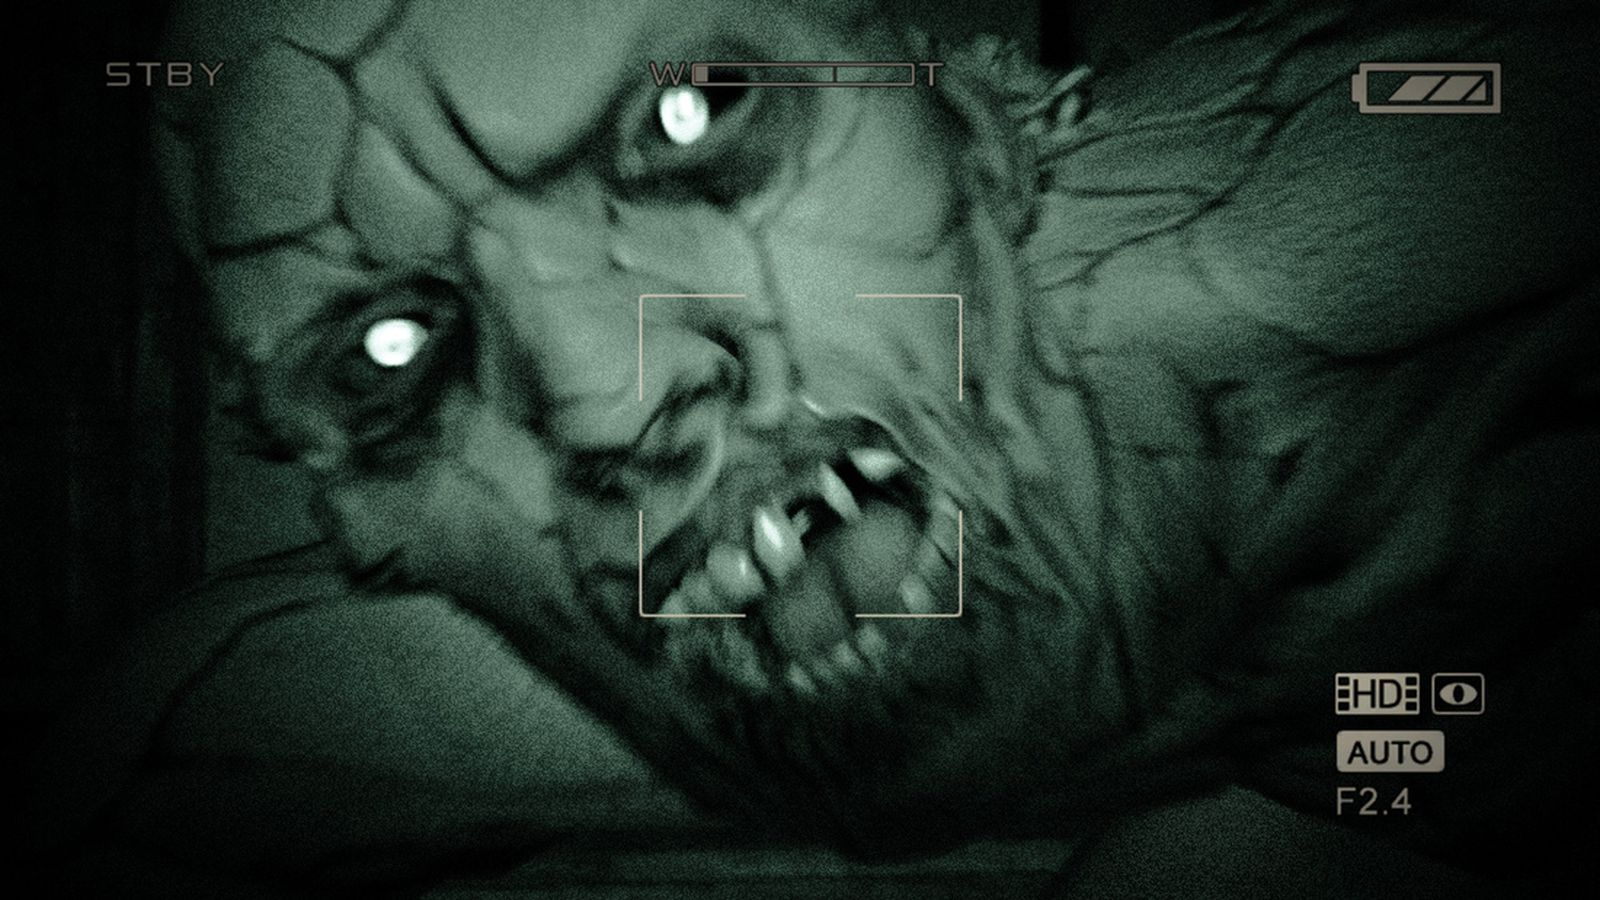 outlast   stealth horror game designed    player suffer polygon